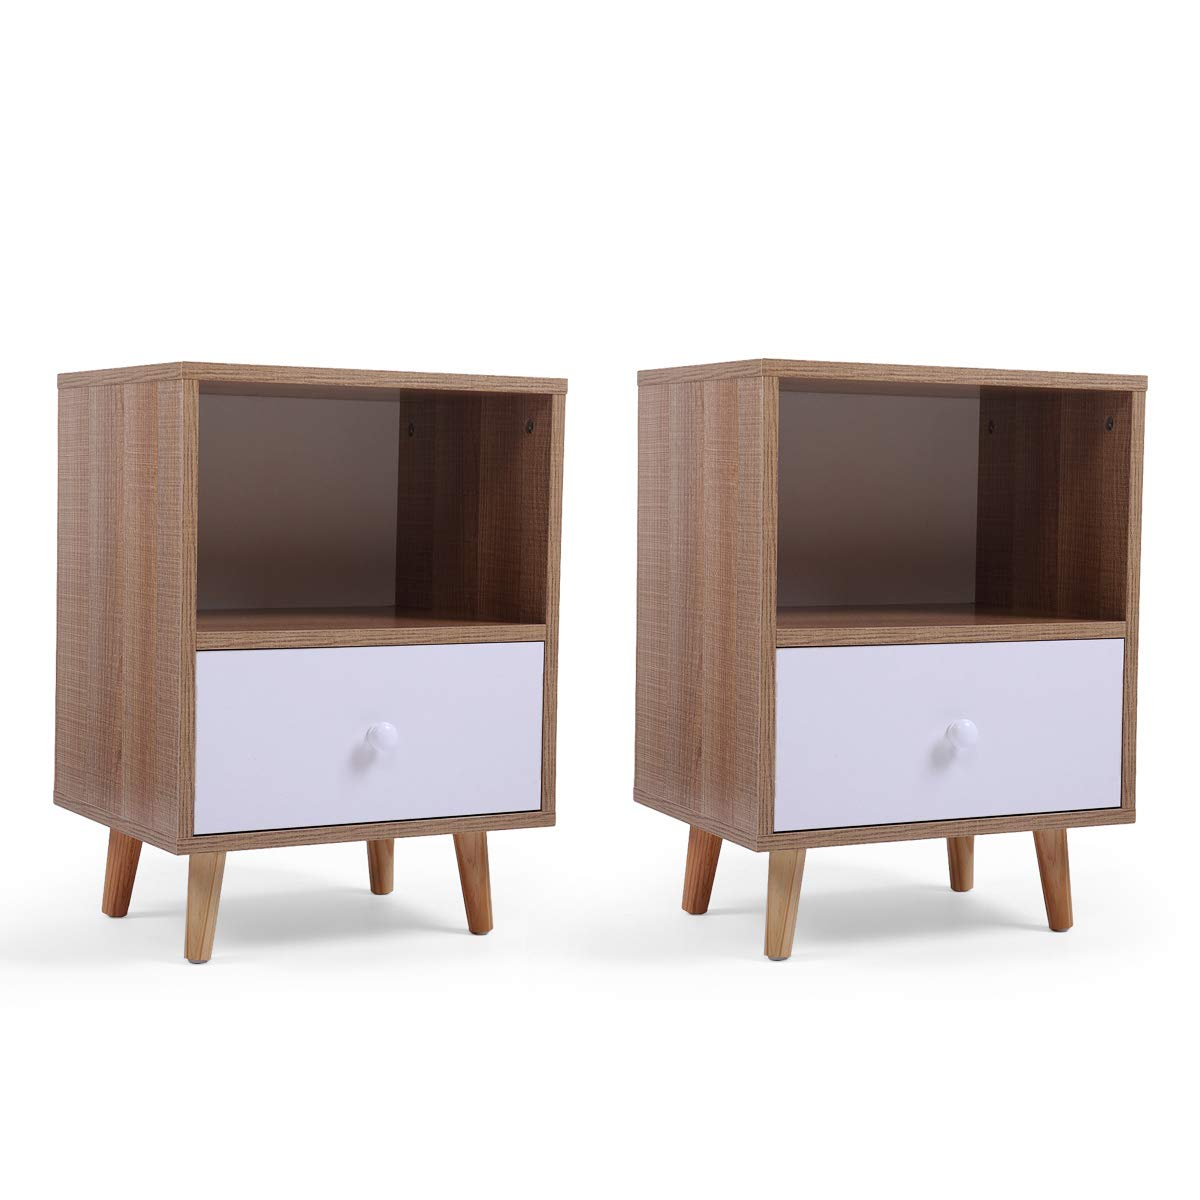 Set of 2 Night Stand 2 Layer w/Drawer Bedside End Table Organizer Bedroom by Betterhomechoice (Image #4)